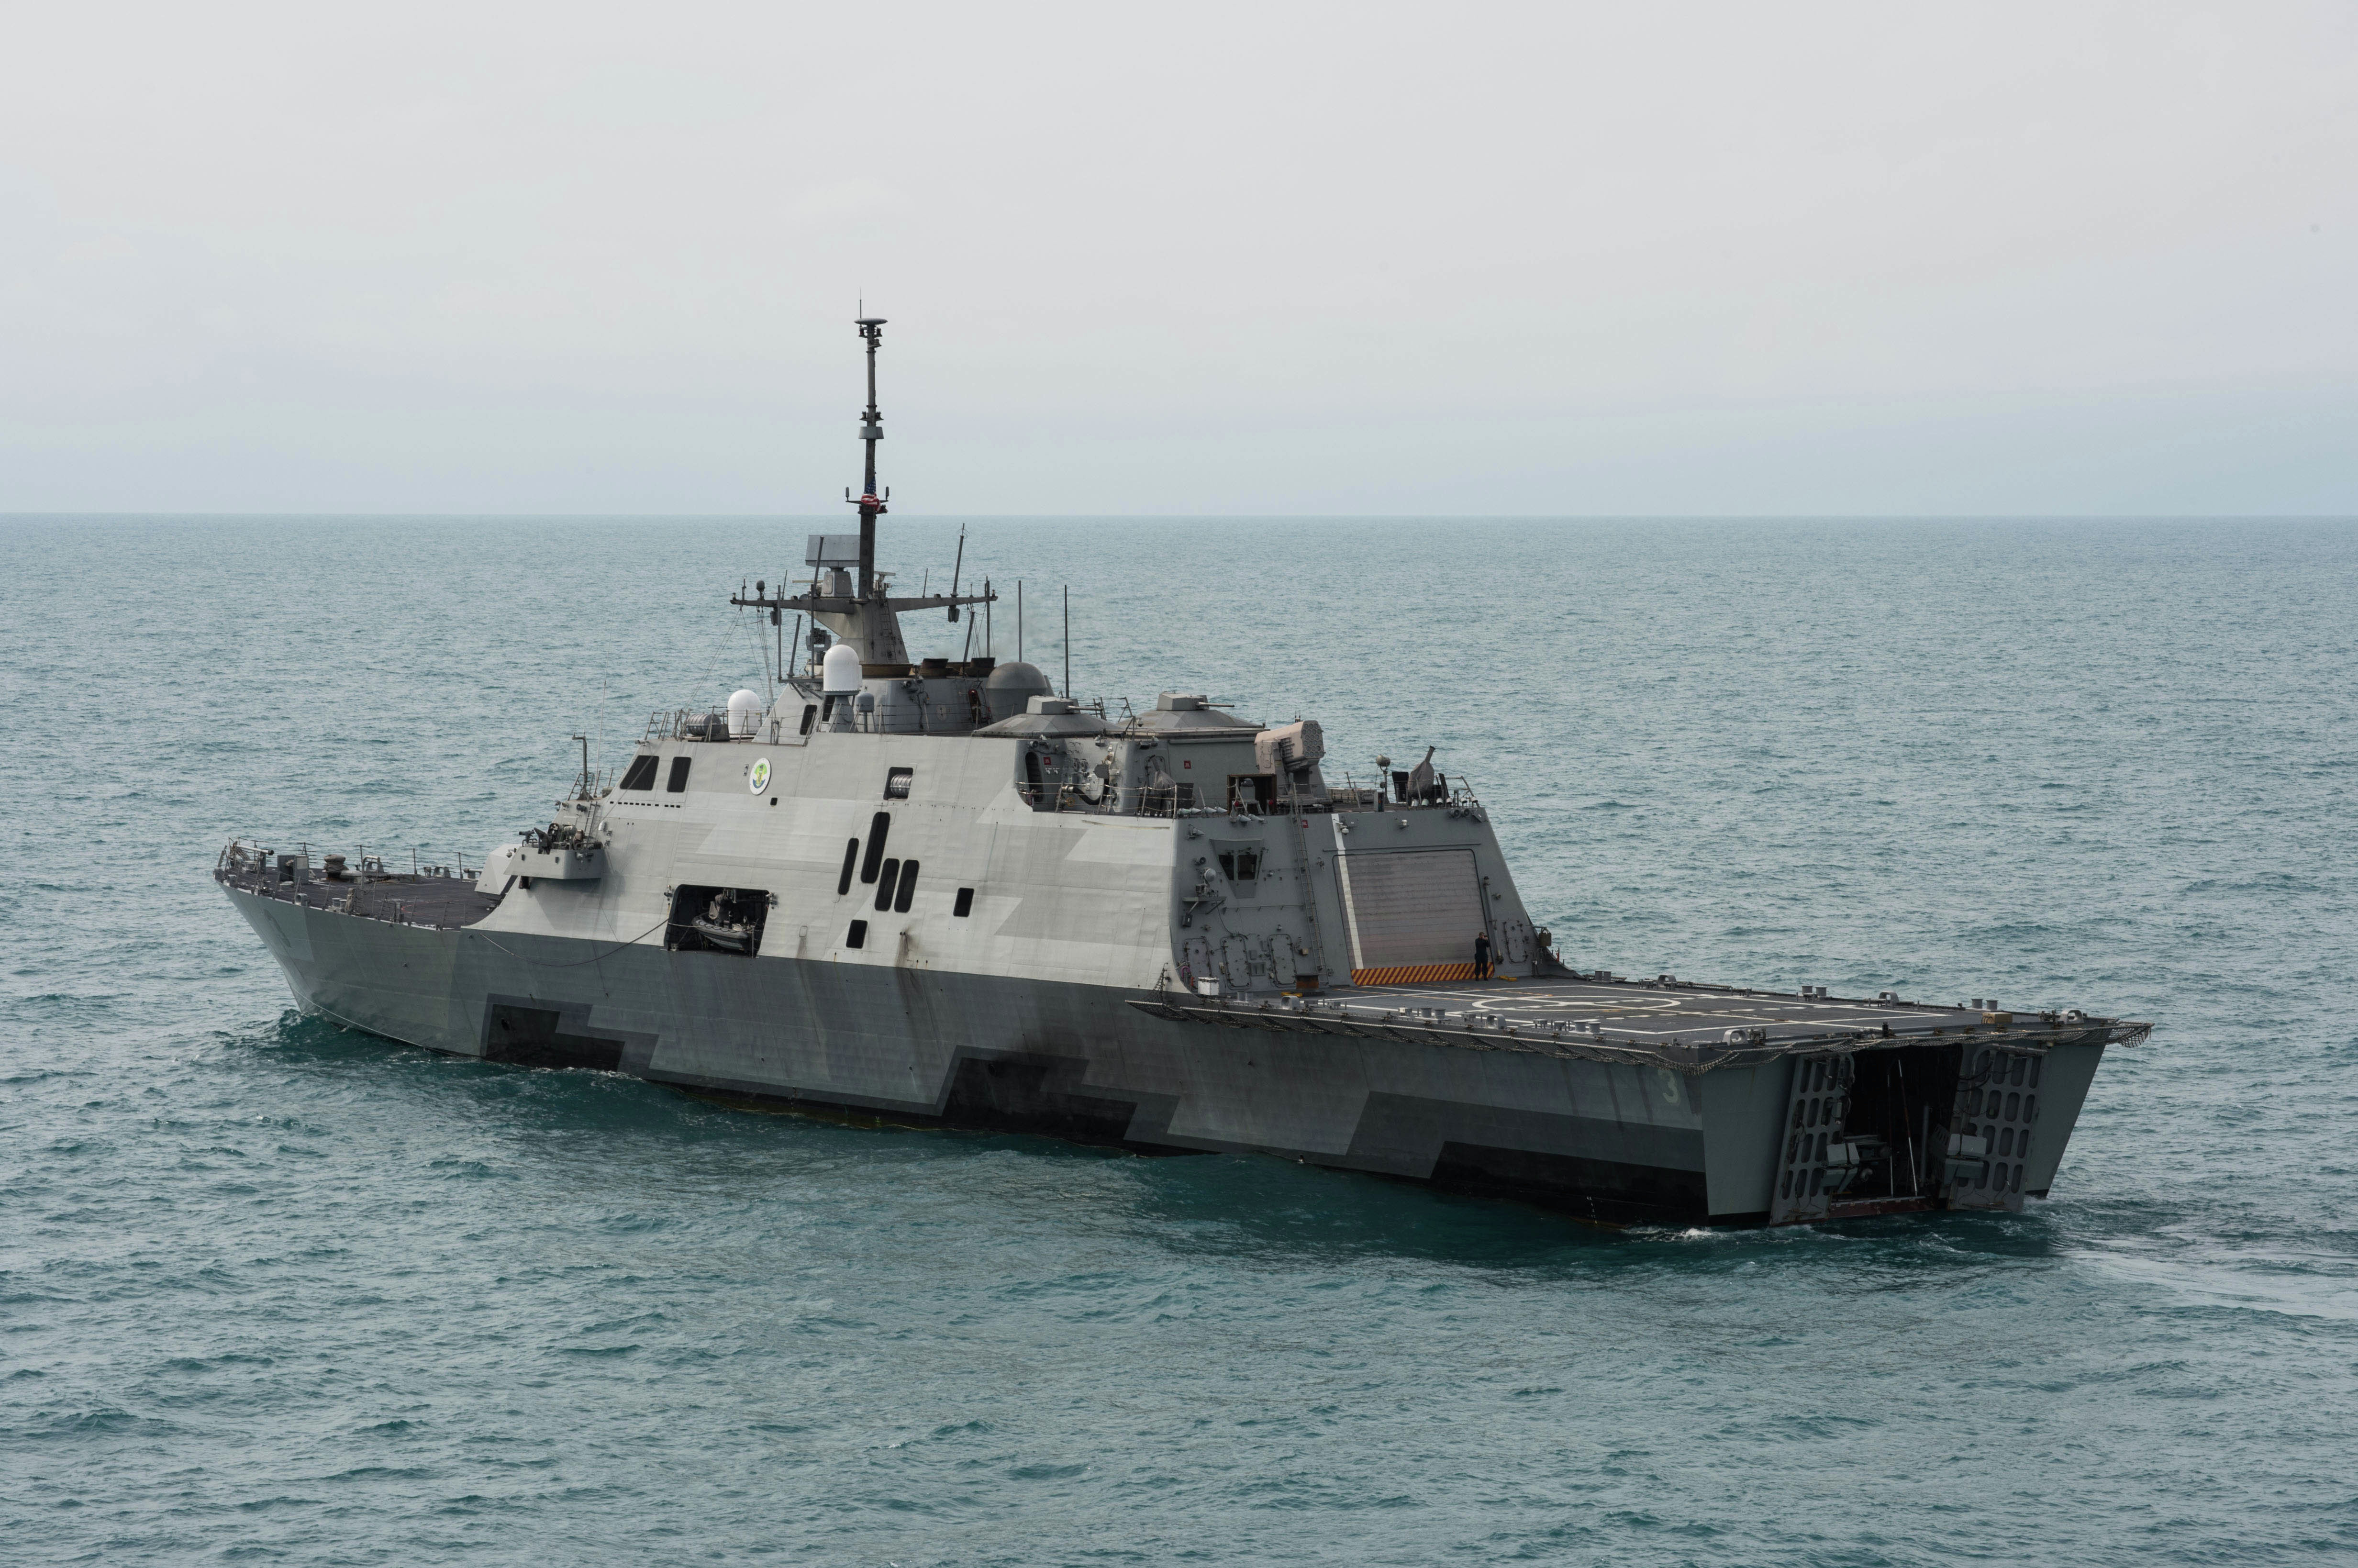 This US Navy handout photo released January 8, 2015 shows the littoral combat ship USS Fort Worth (LCS 3) as it operates on January 7, 2015 near the location where the tail of AirAsia Flight QZ8501l was discovered. Fort Worth is currently supporting Indonesian-led efforts to locate the downed aircraft.